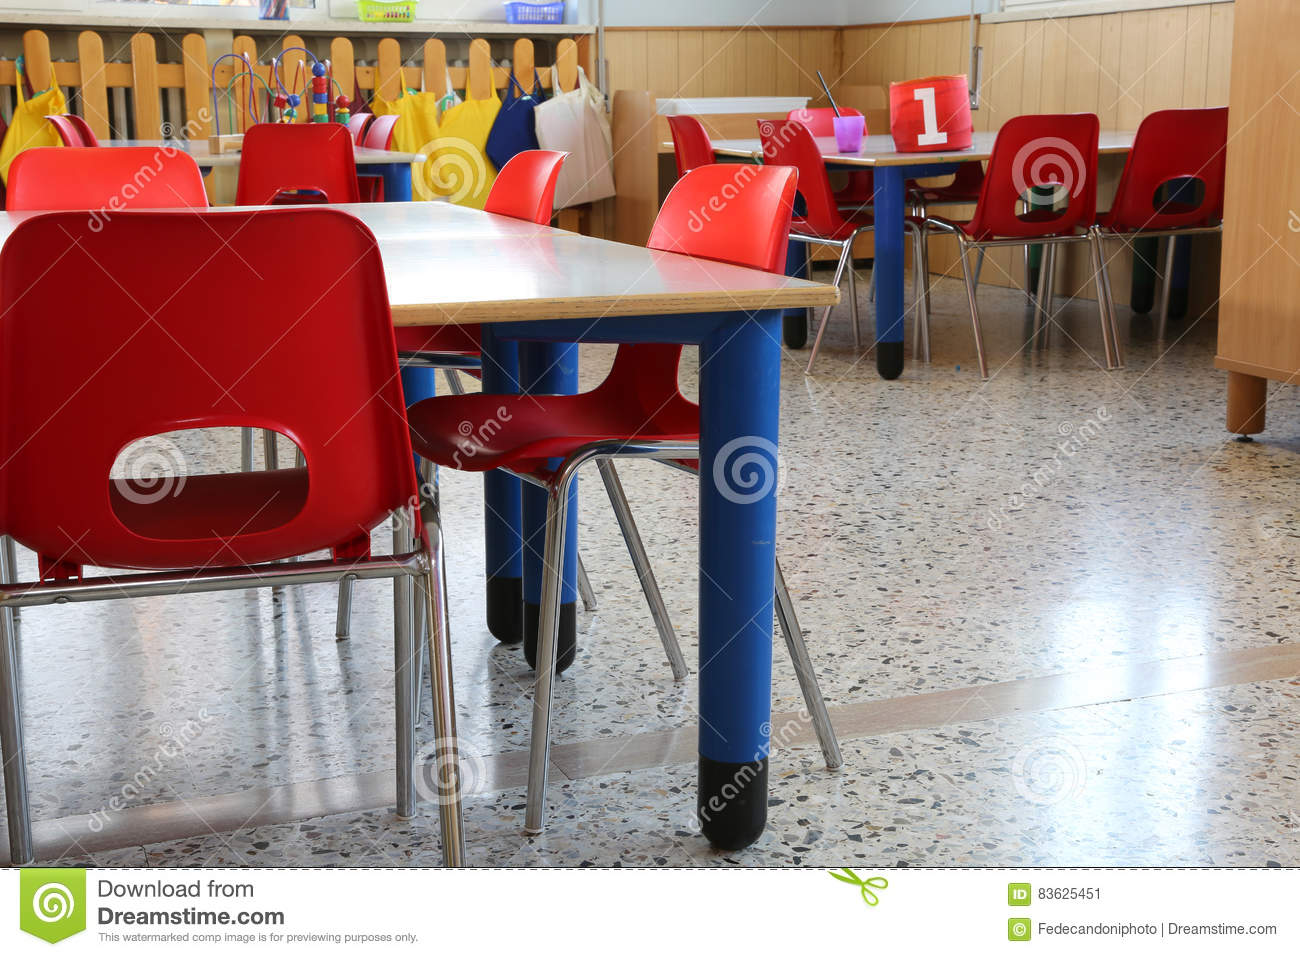 Phenomenal Red Chairs With Small Benches Inside A Kindergarten For Inzonedesignstudio Interior Chair Design Inzonedesignstudiocom